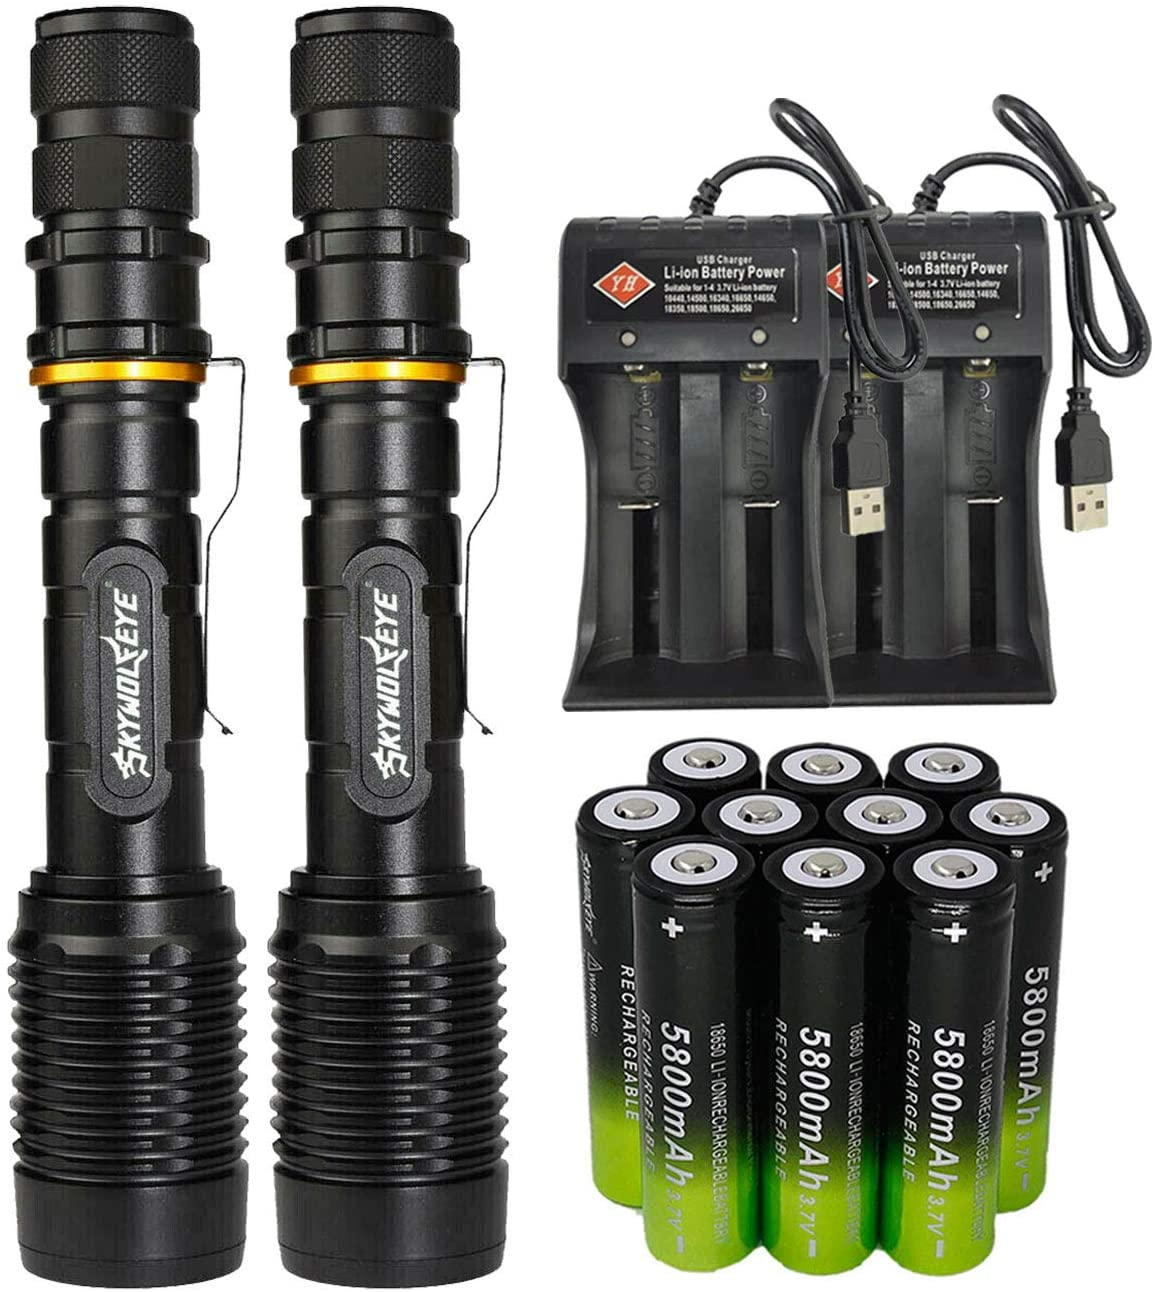 2 Packs High 2000 Lumens 18650 Tactical LED Flashlight Torch with 10PCS 3.7v High Capacity Rechargeable Battery&2PCS 2 Slots Charger, Bright Adjustable Focus and 5 Modes for Camping Hiking